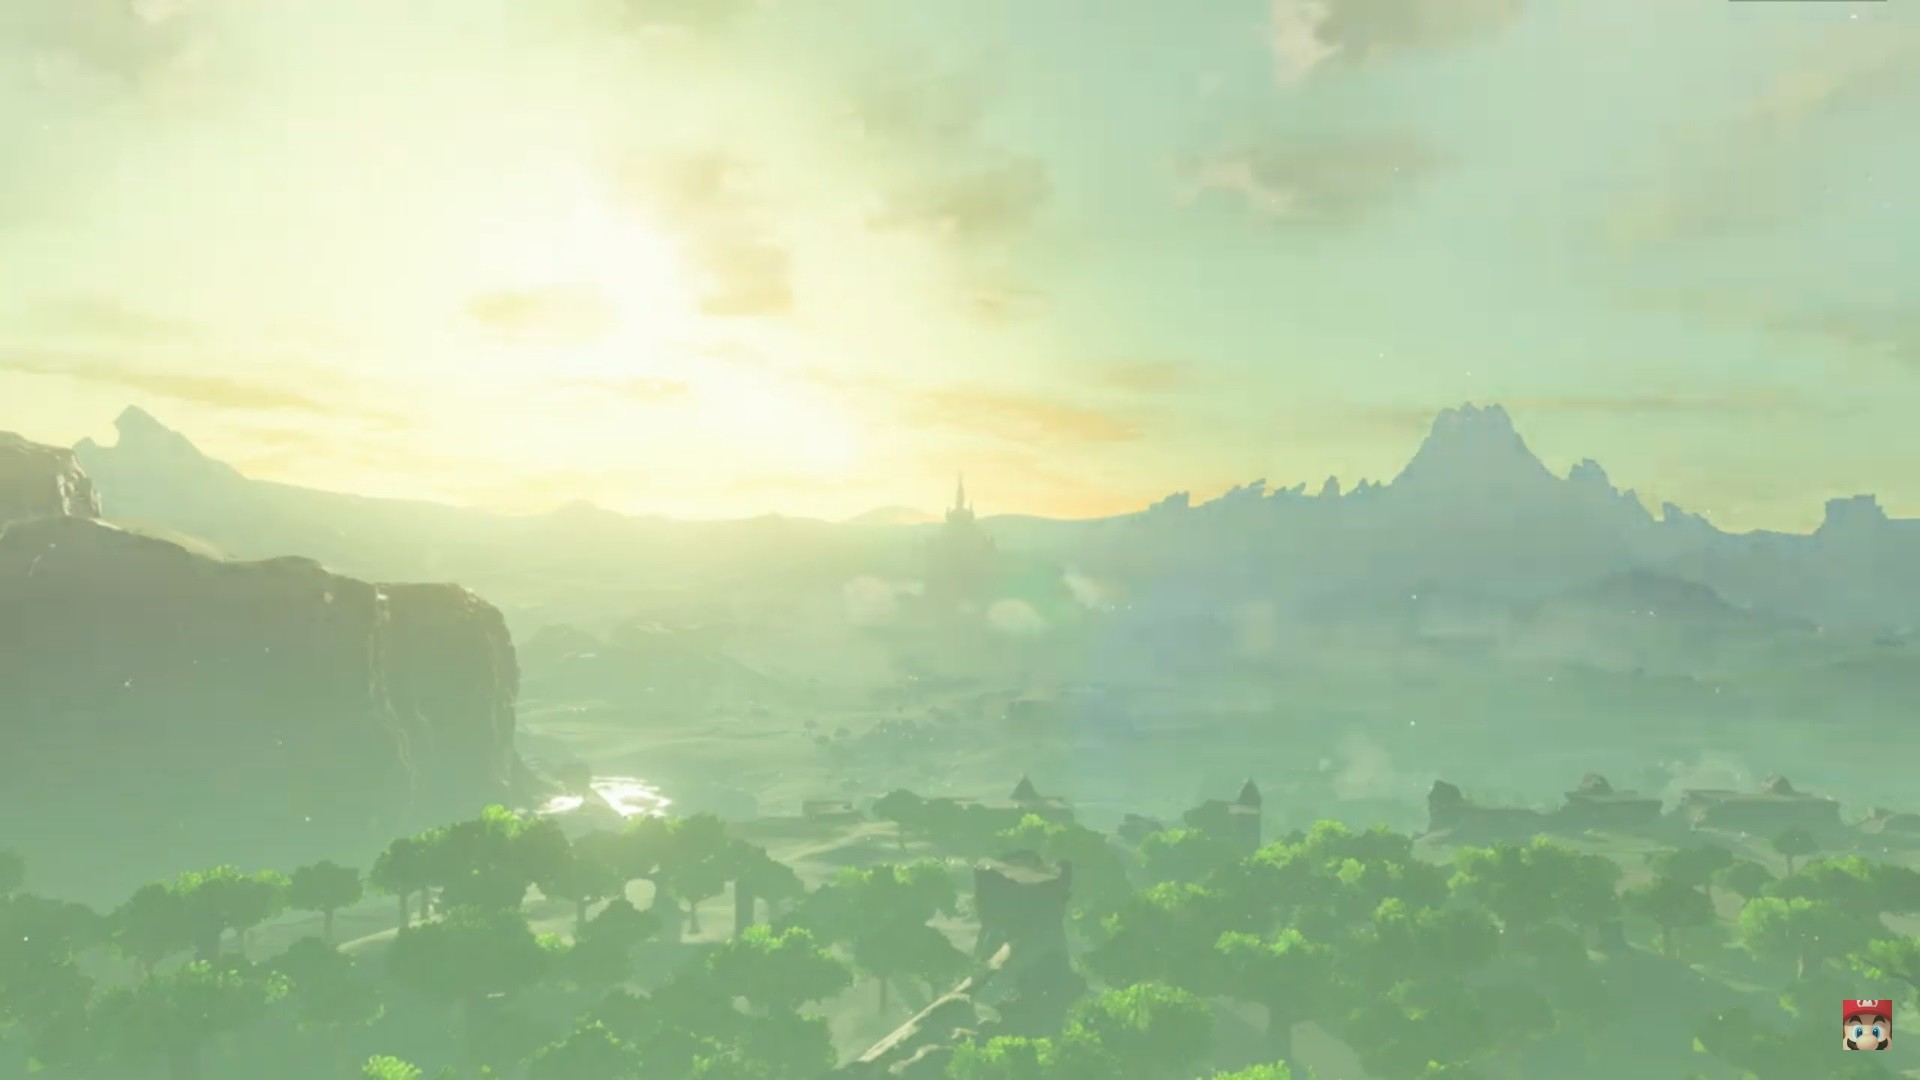 Nintendo Teases Sequel To The Legend Of Zelda Breath Of The Wild